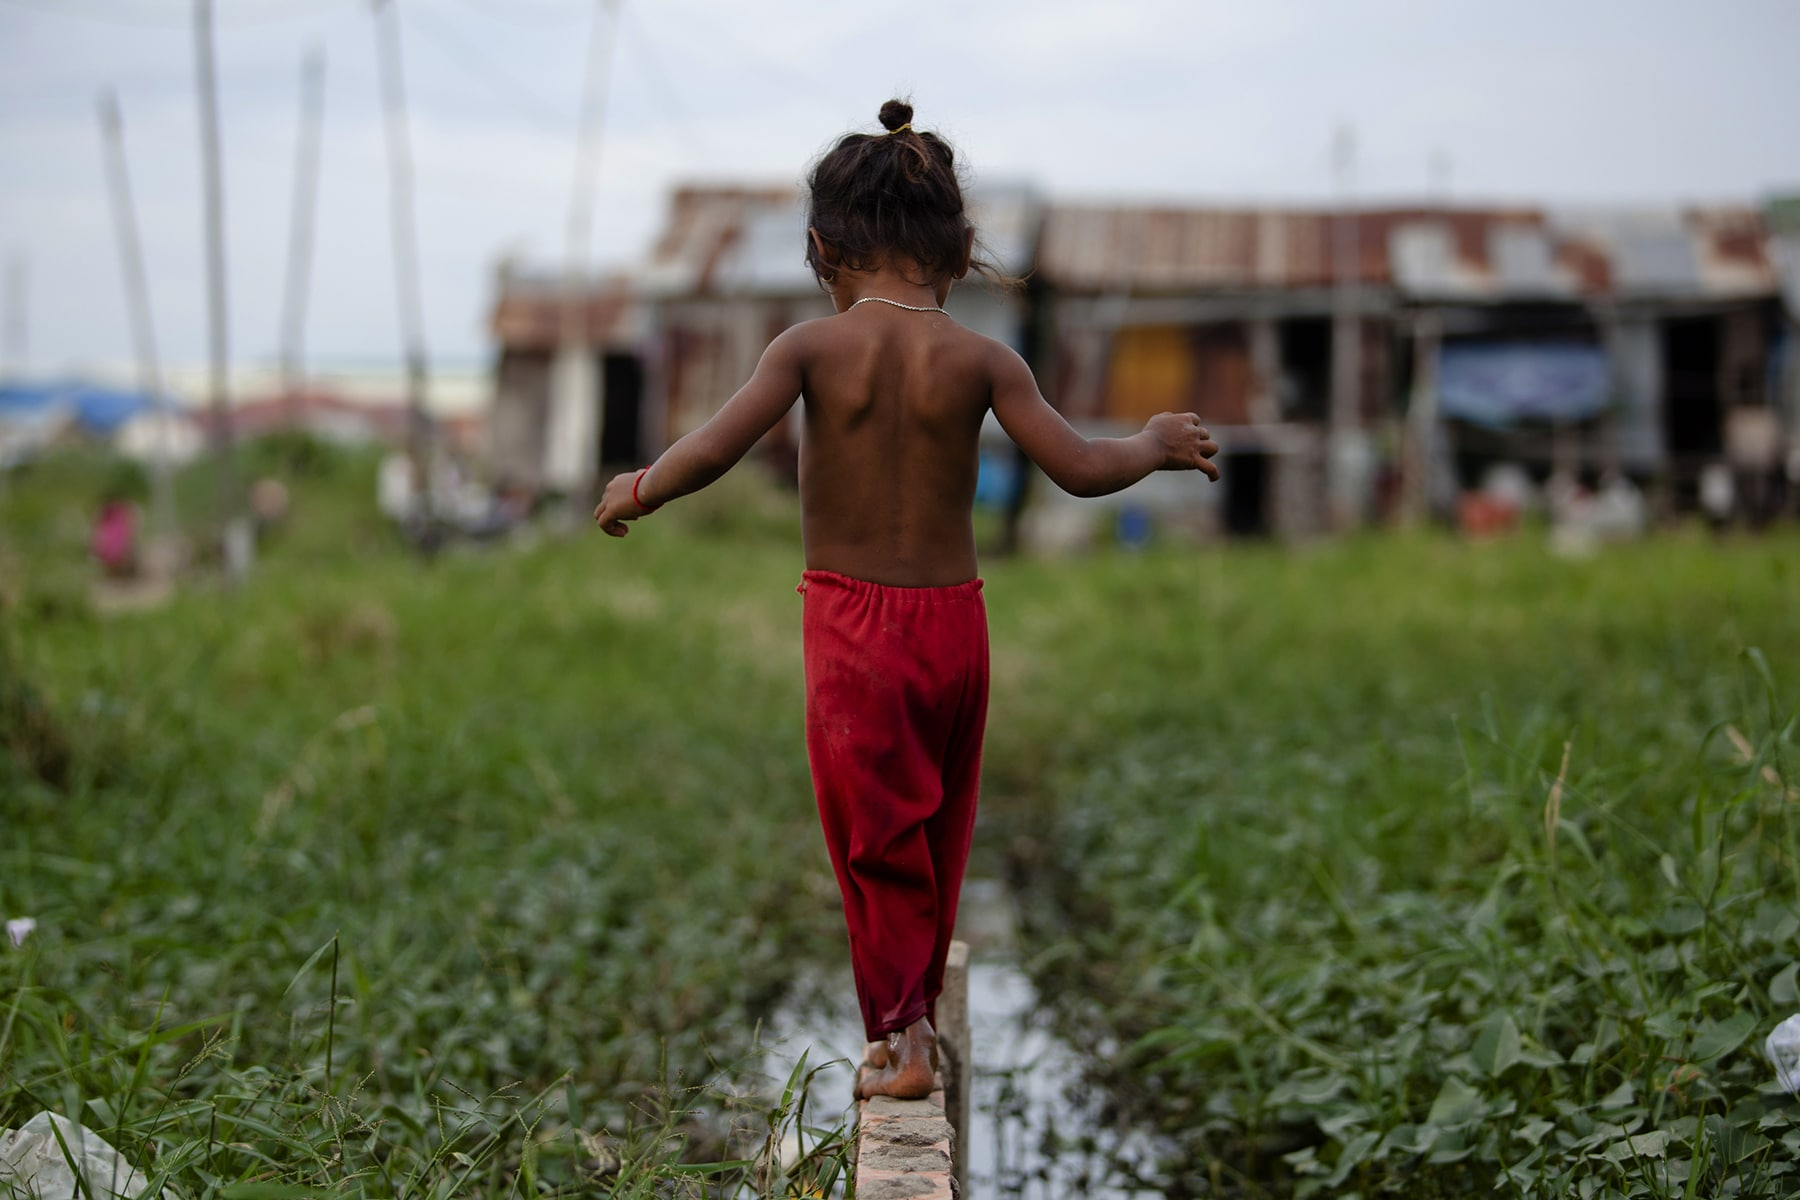 a small child walks along a water filled gutter, surrounded by green grass with a shabby house in the background.